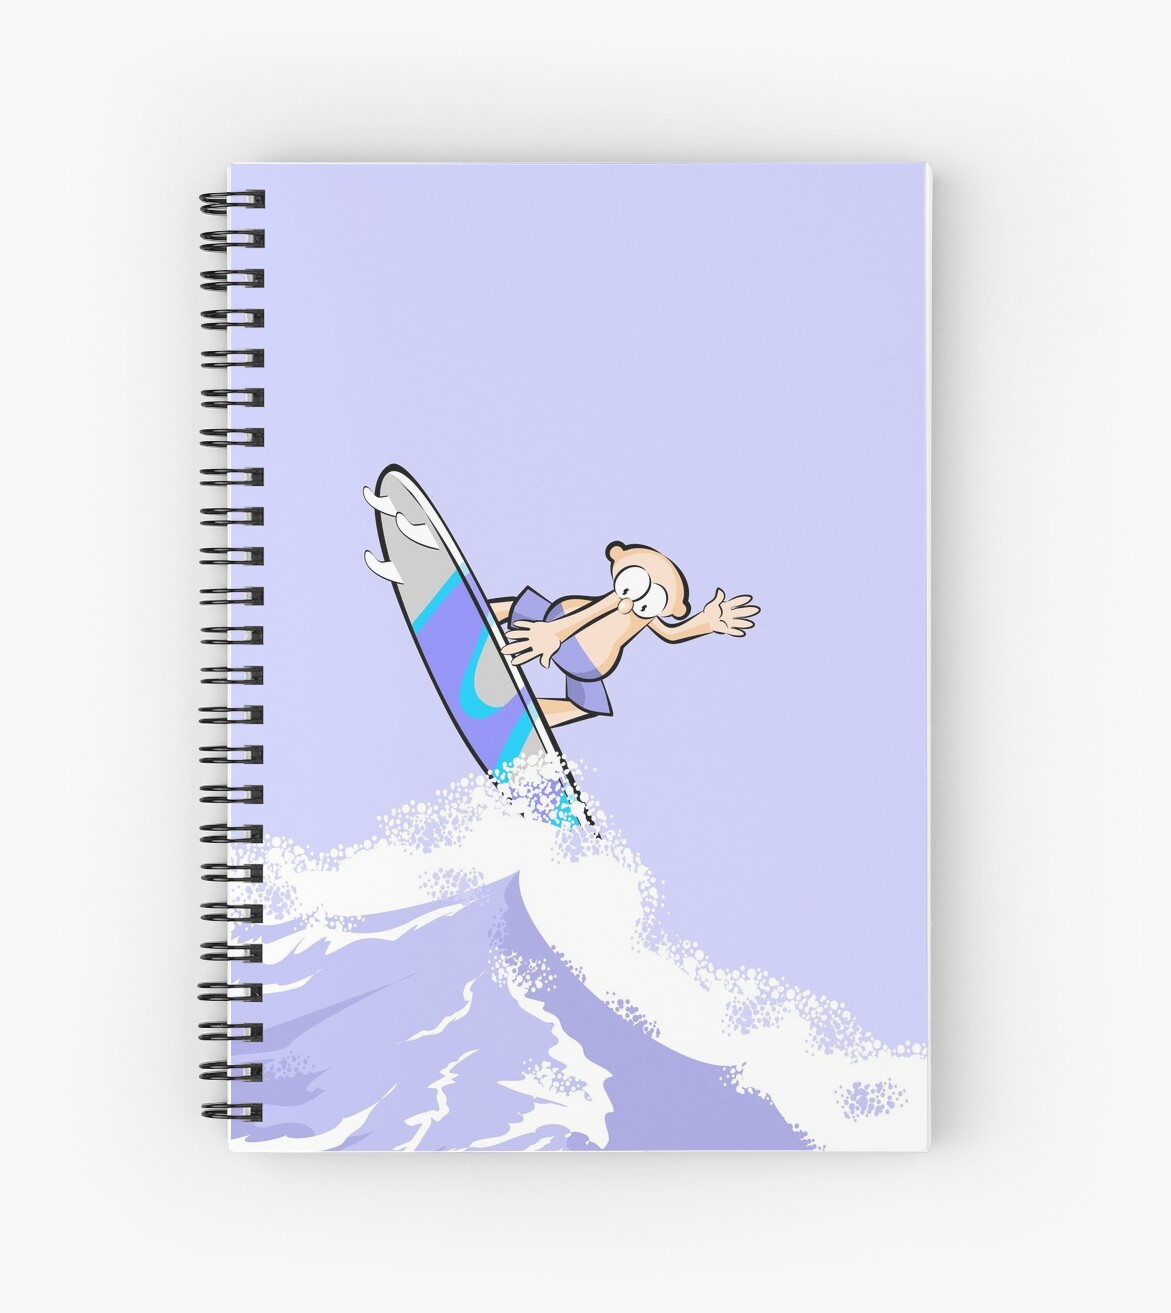 Boy surfing on a big wave by MegaSitioDesign